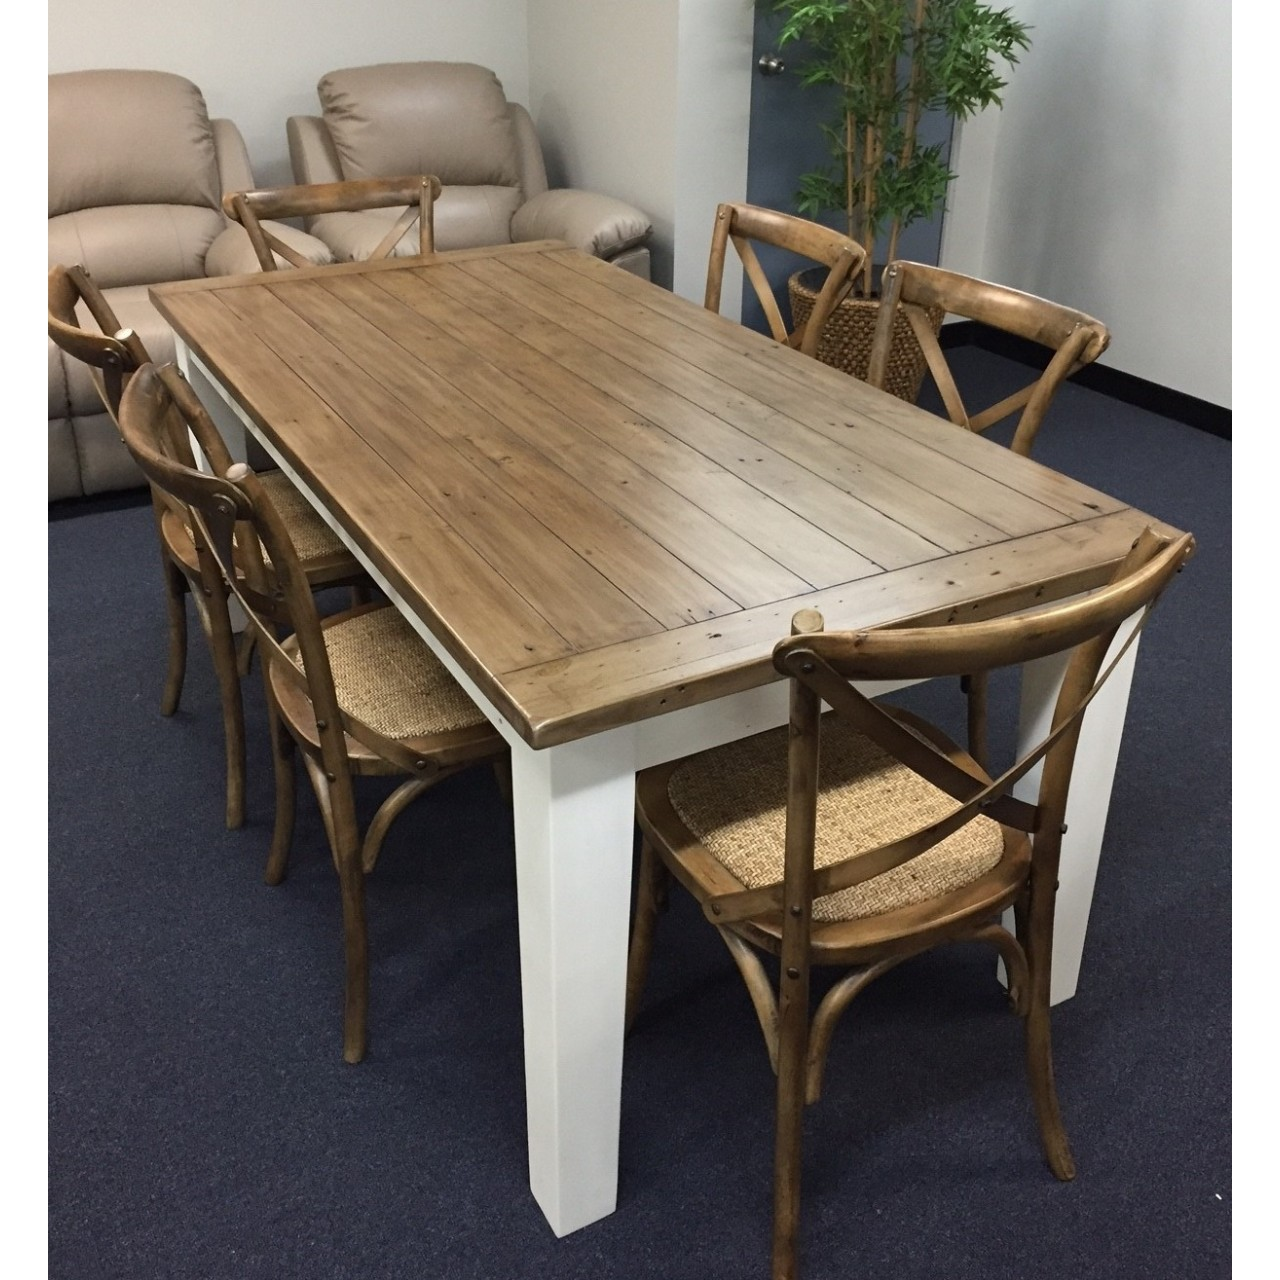 hudson hamptons style timber dining table chairs